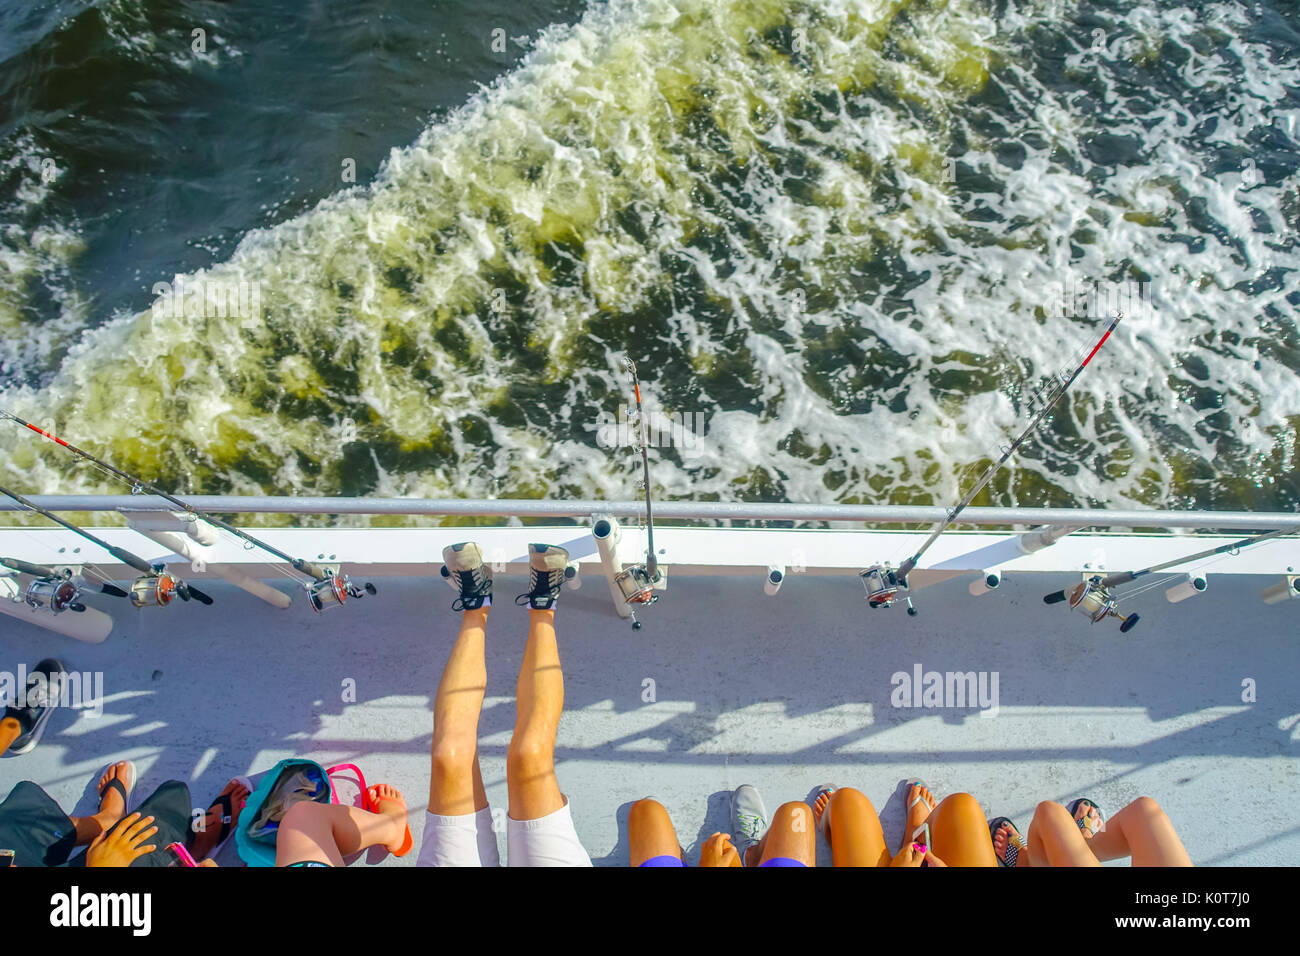 FORT LAUDERDALE, USA - JULY 11, 2017: Aerial view of unidentified people in front of a fishing rods in a big boat Stock Photo